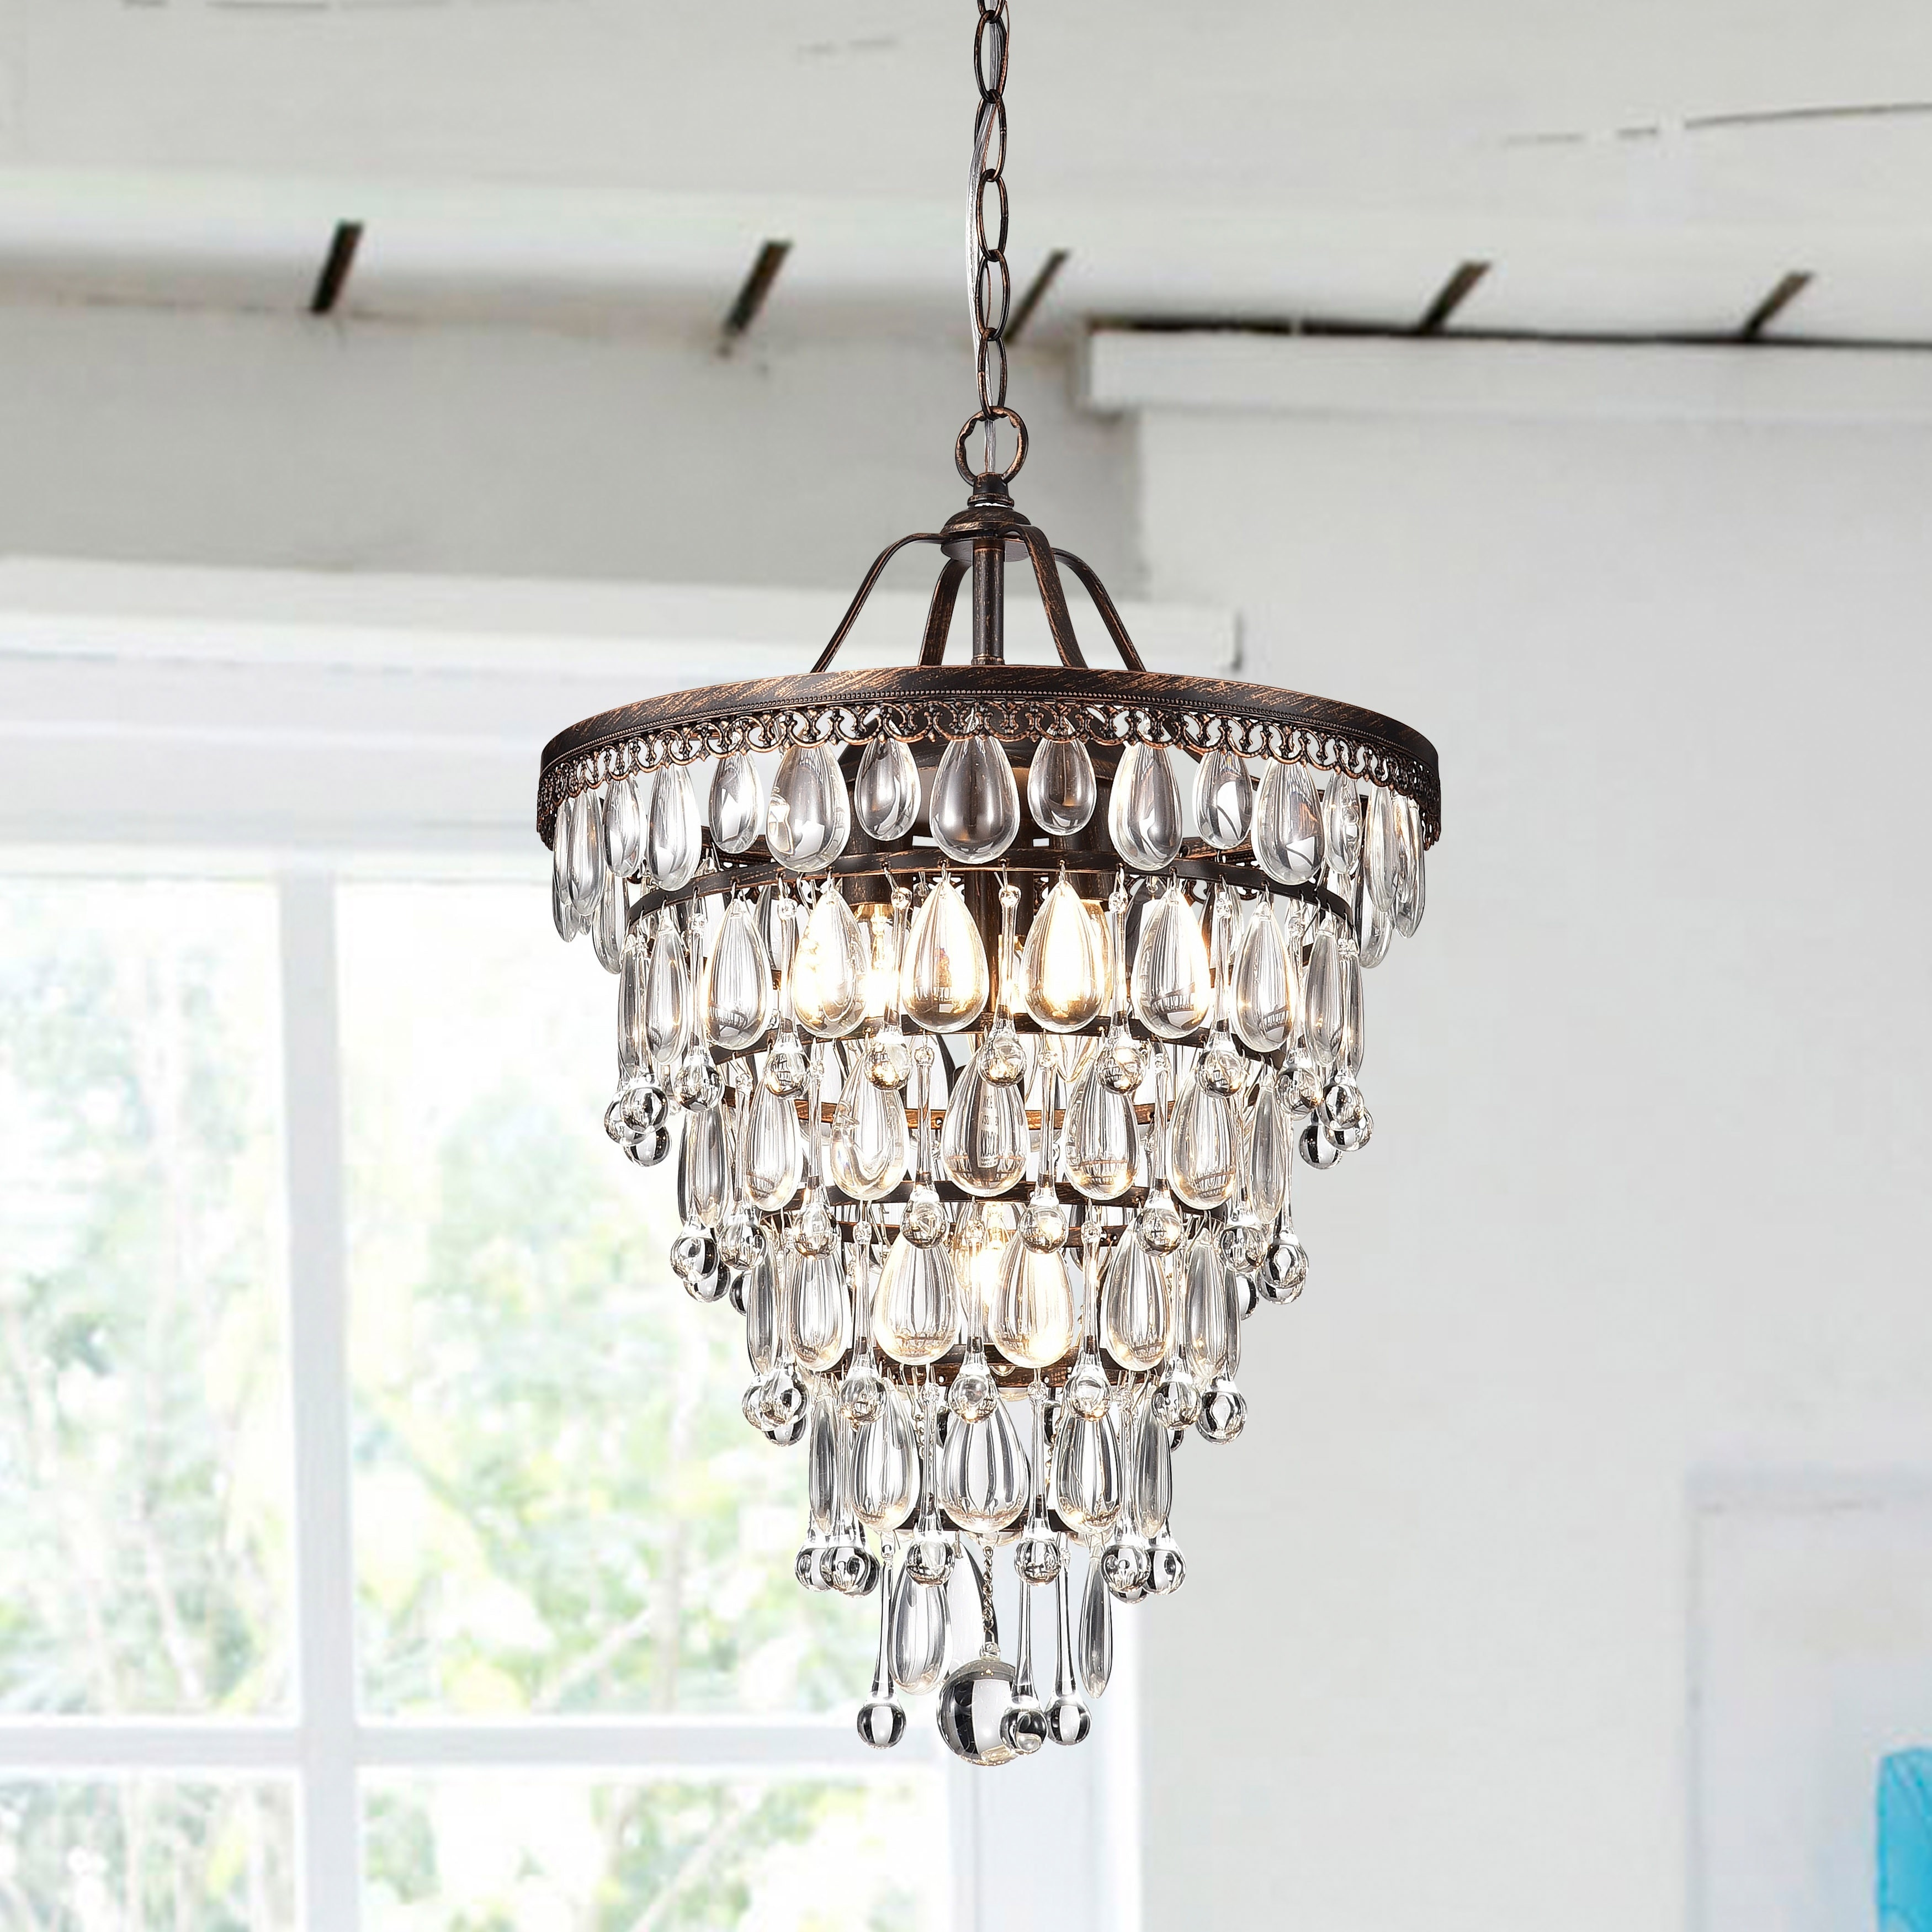 Conical 4 light Antique Brass Crystal Chandelier Free Shipping